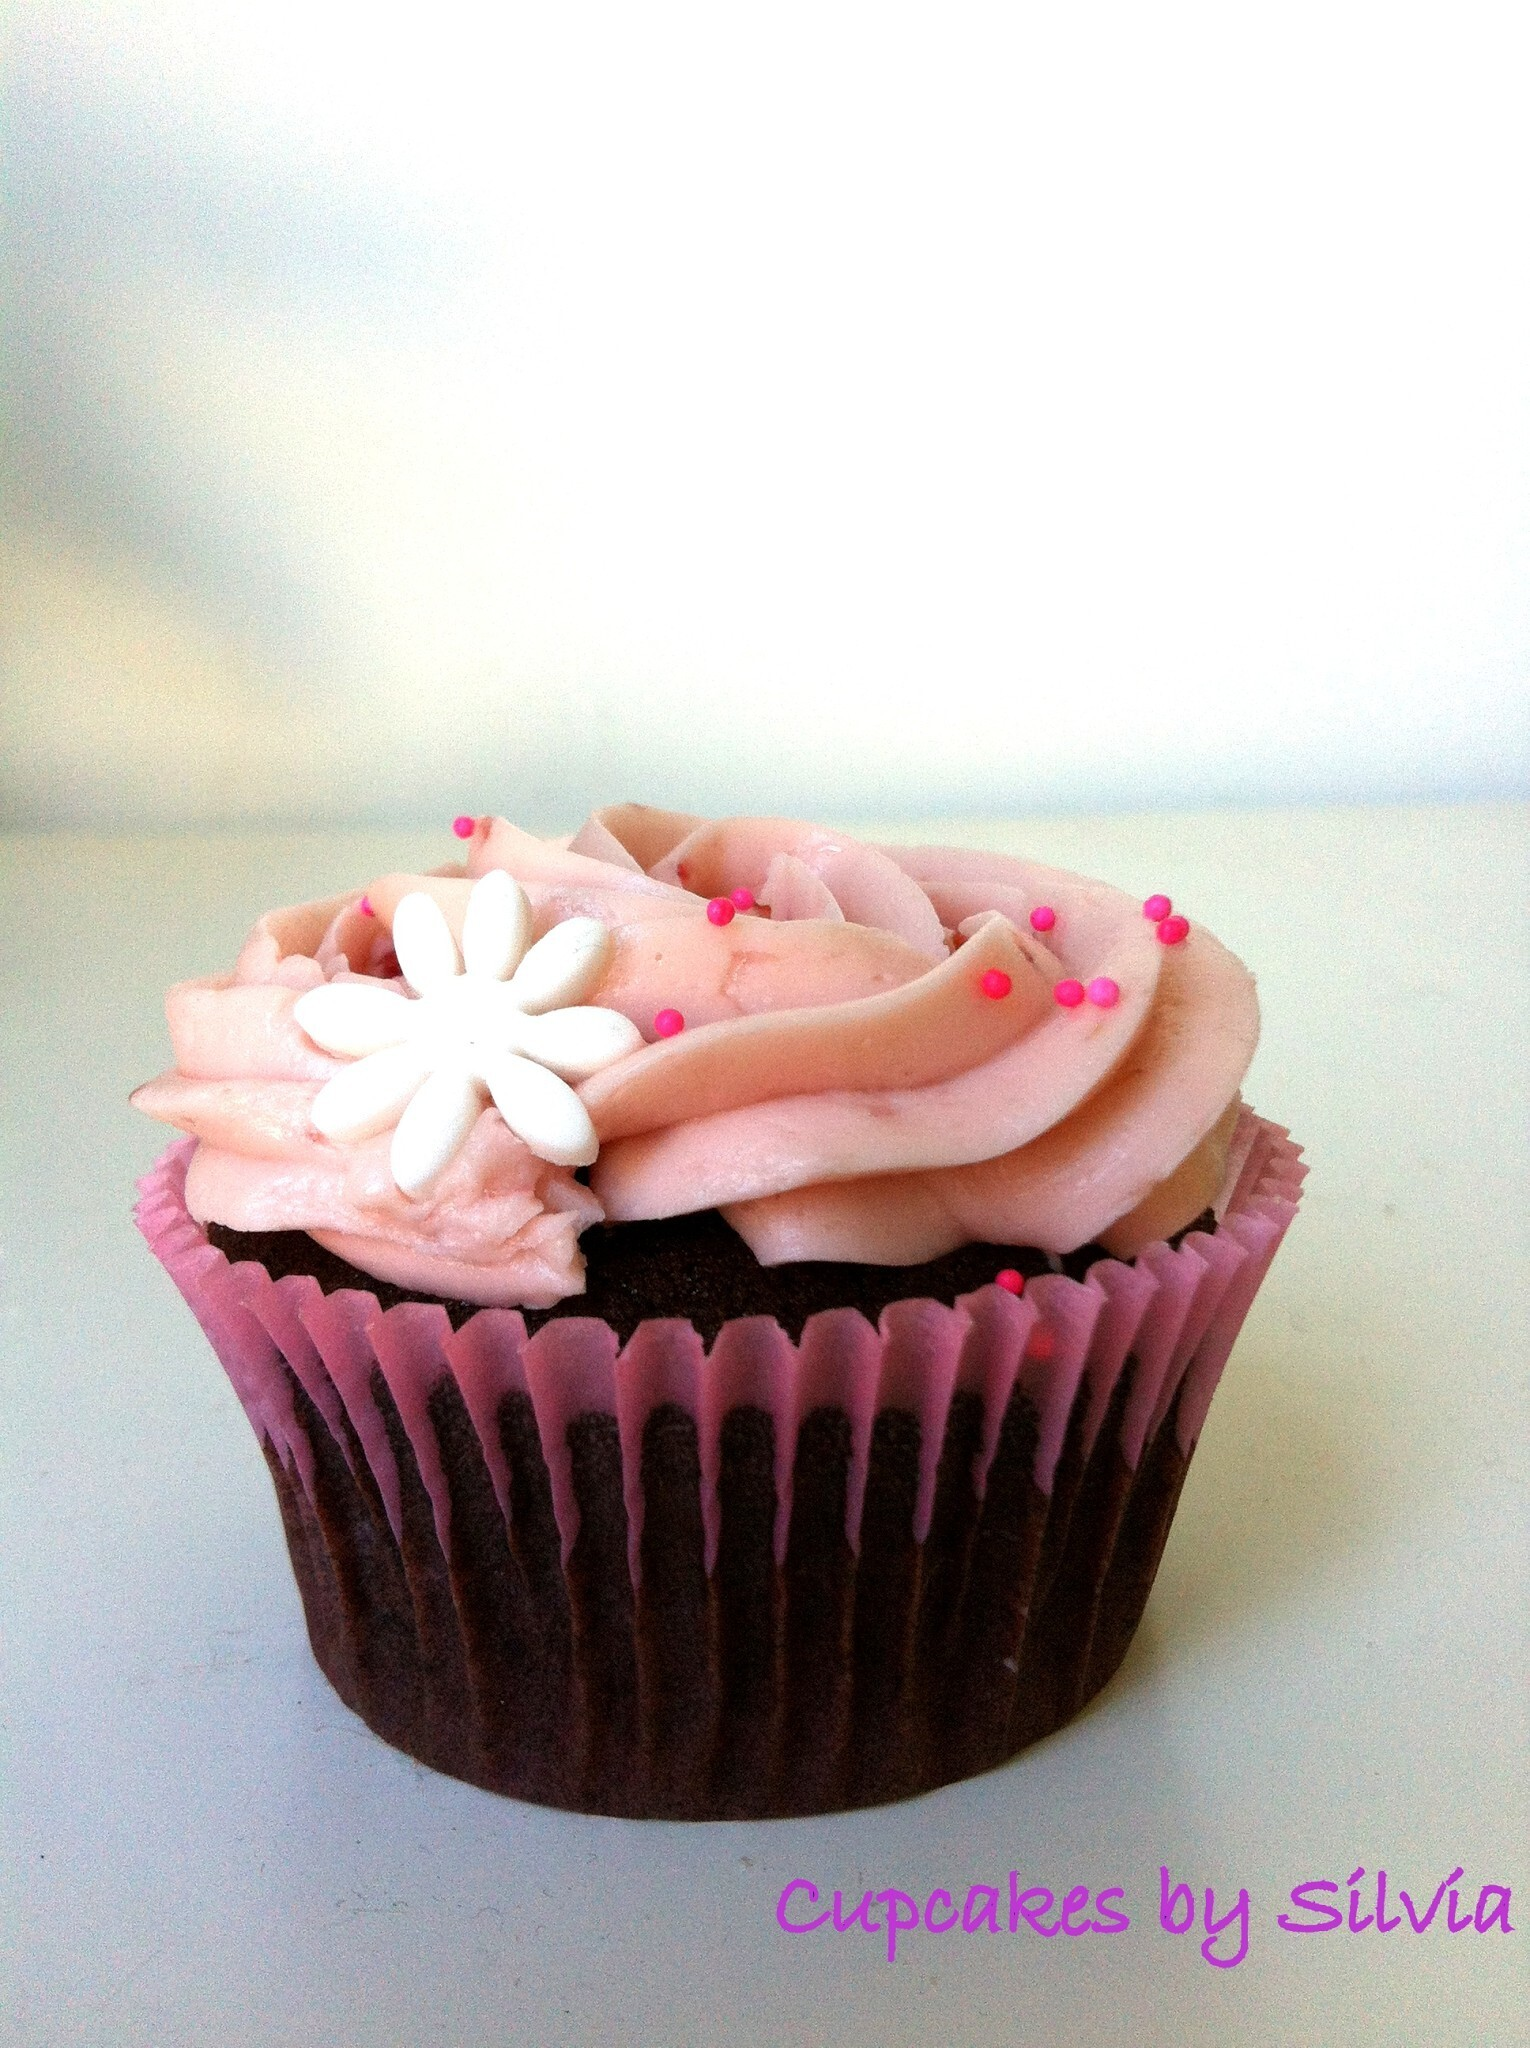 Cupcakes de Xocolata amb Buttercream Suís de Maduixes / Chocolate Cupcakes with Strawberry Swiss Buttercream